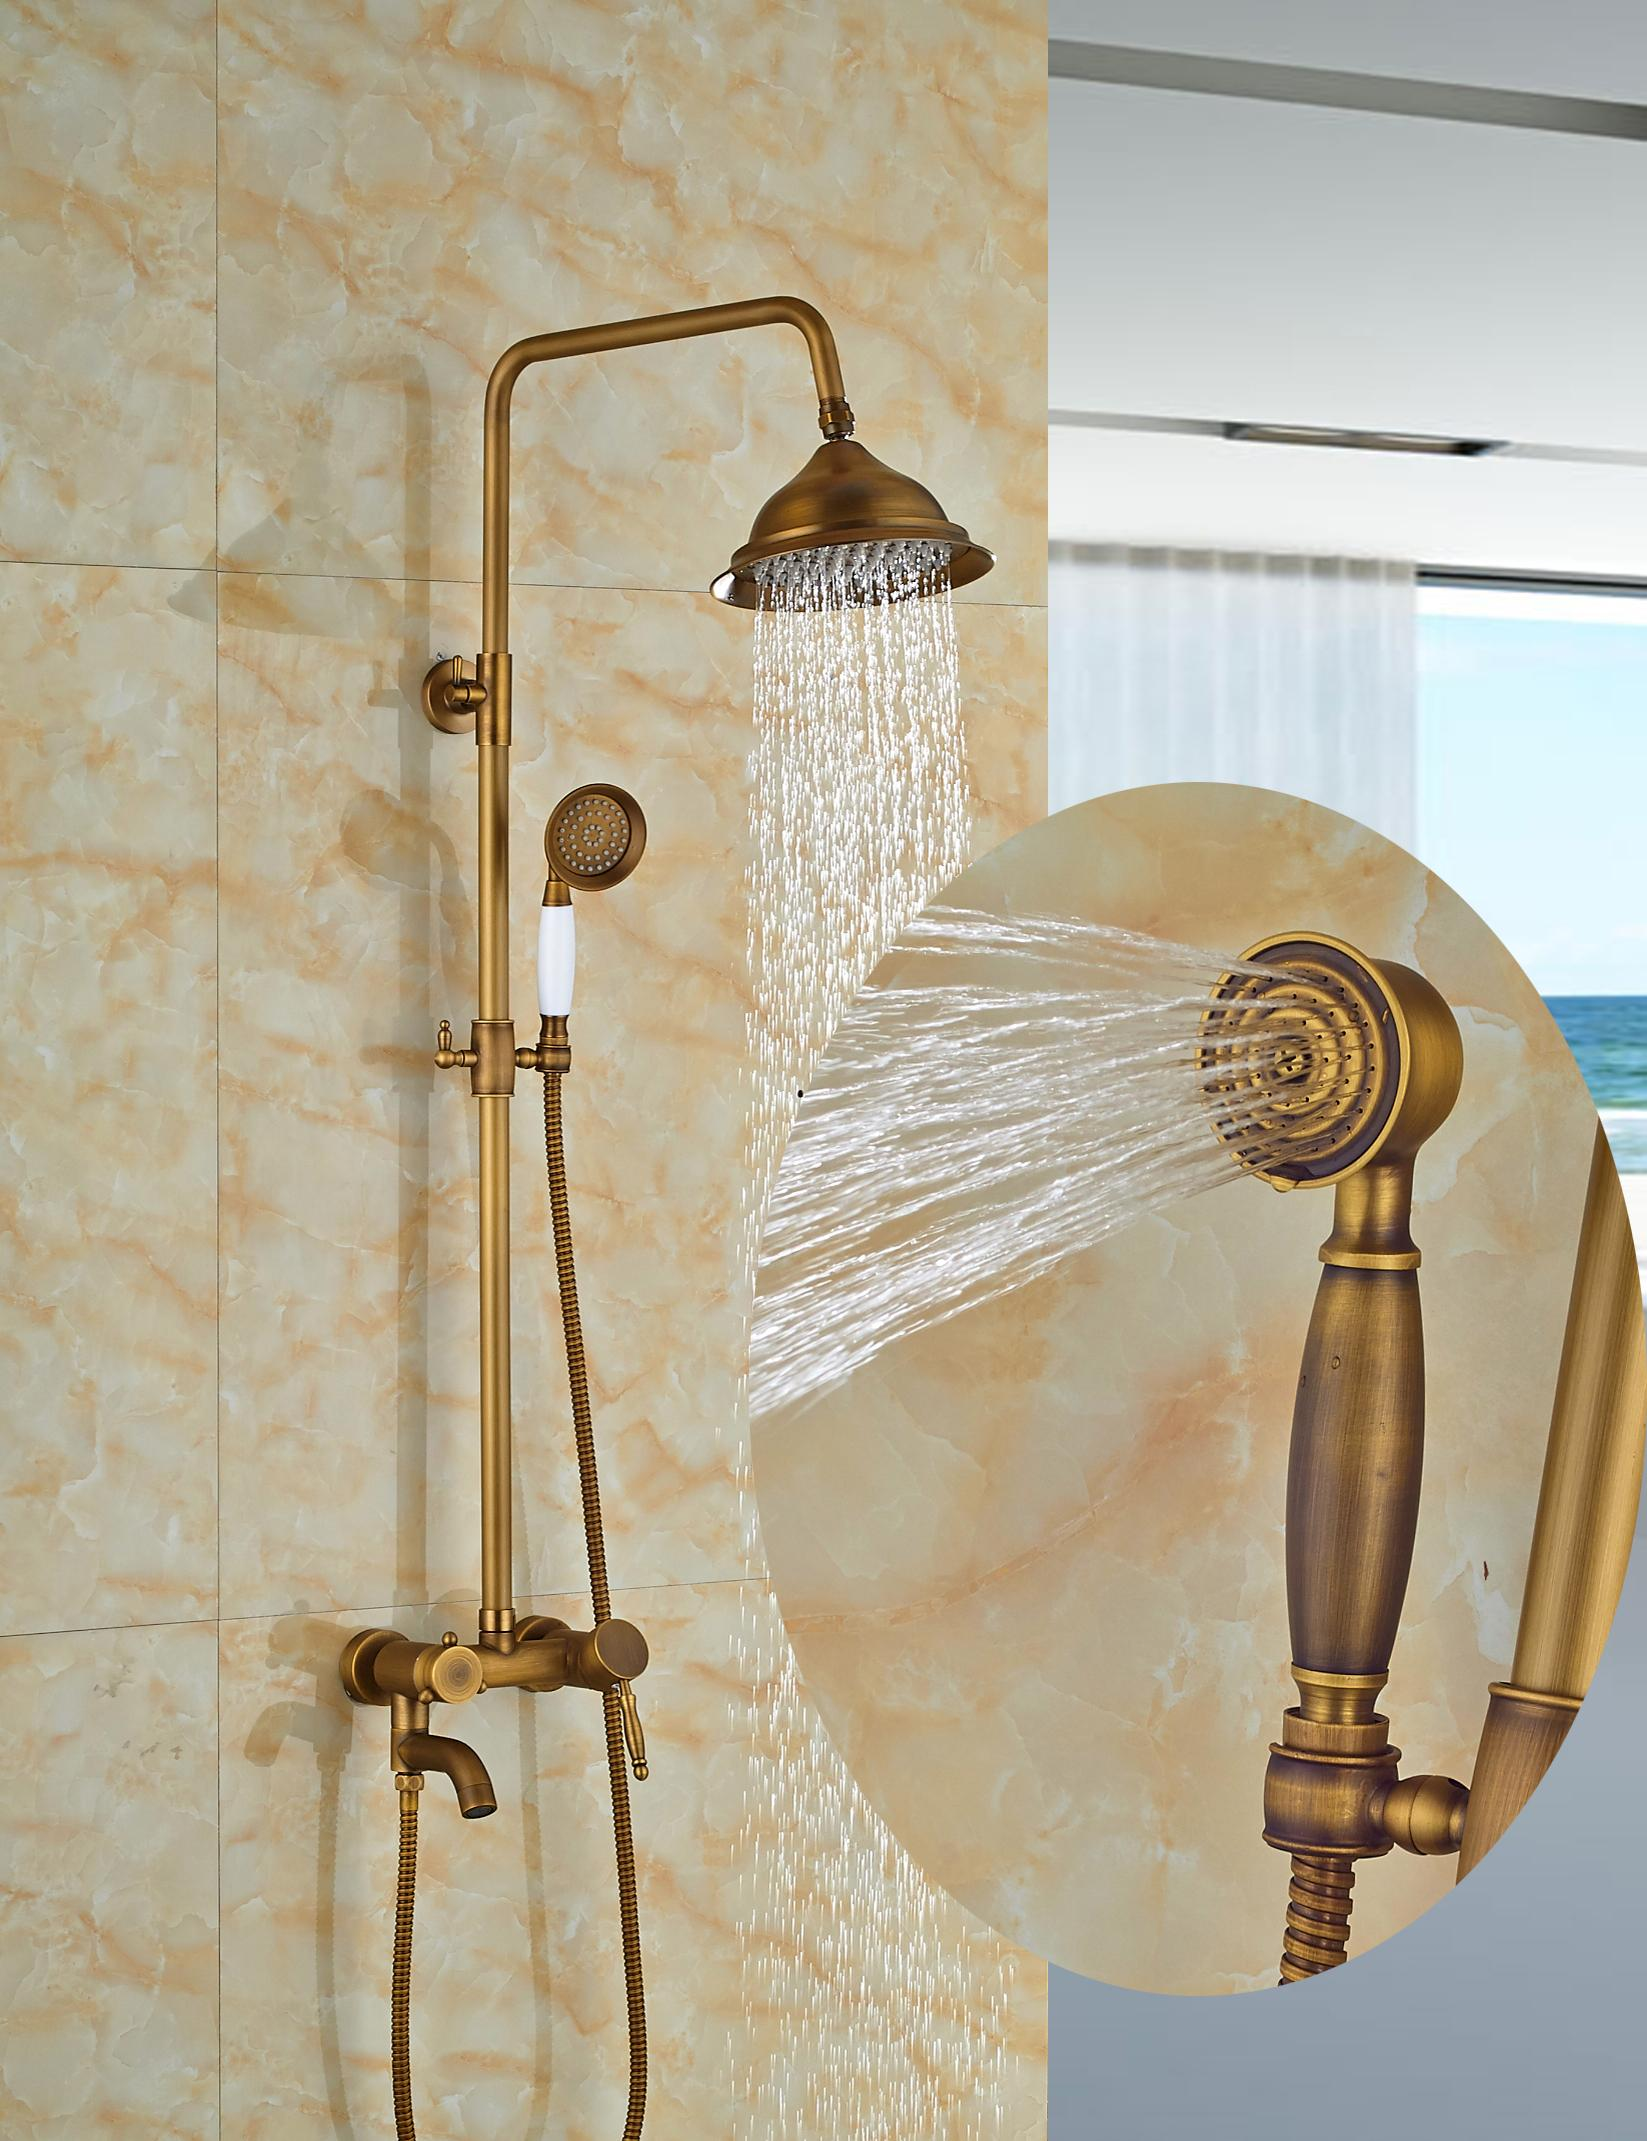 2019 Wholesale And Retail Antique Brass Bell Style Rain Shower Faucet Set Tub Spout Mixer Tap W Hand Shower Wall Mounted Shower From Gonglangno1